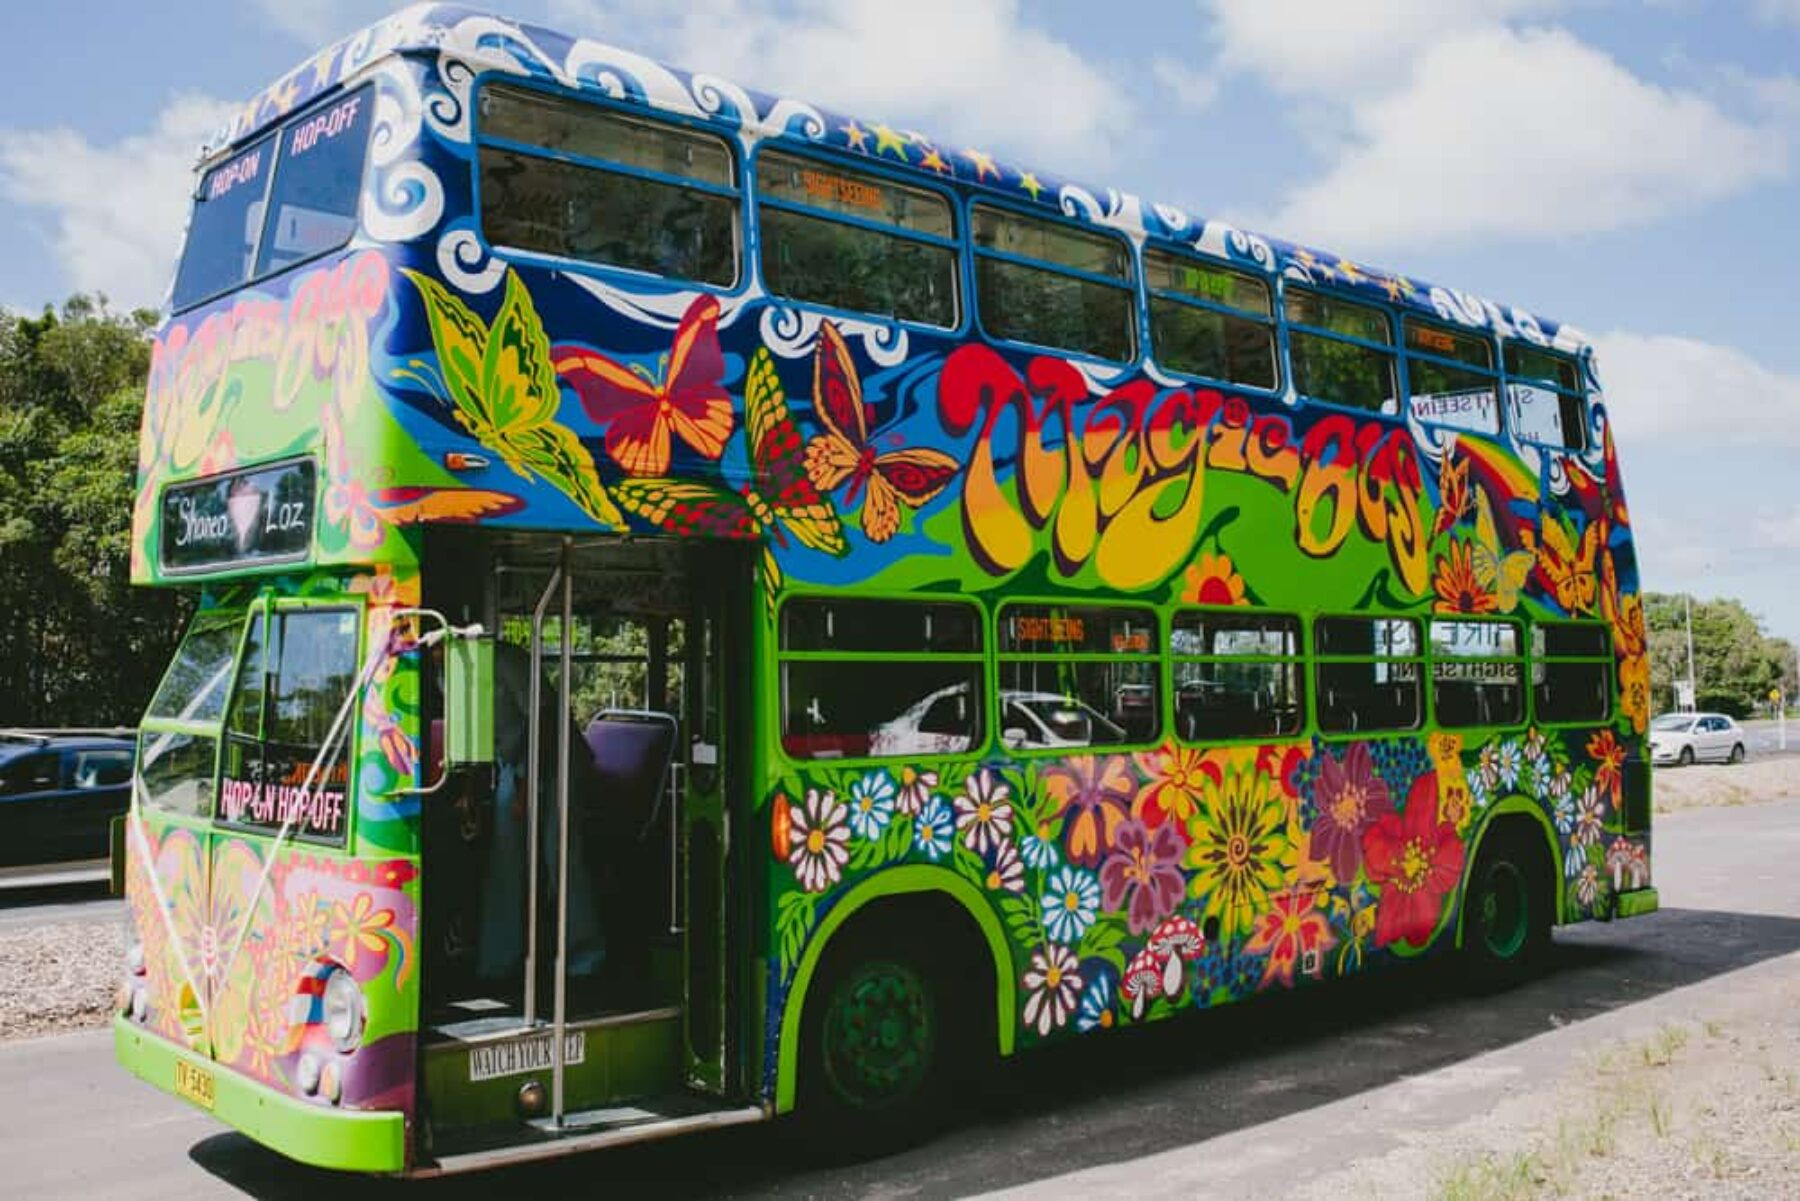 The Byron Bay Magic Bus